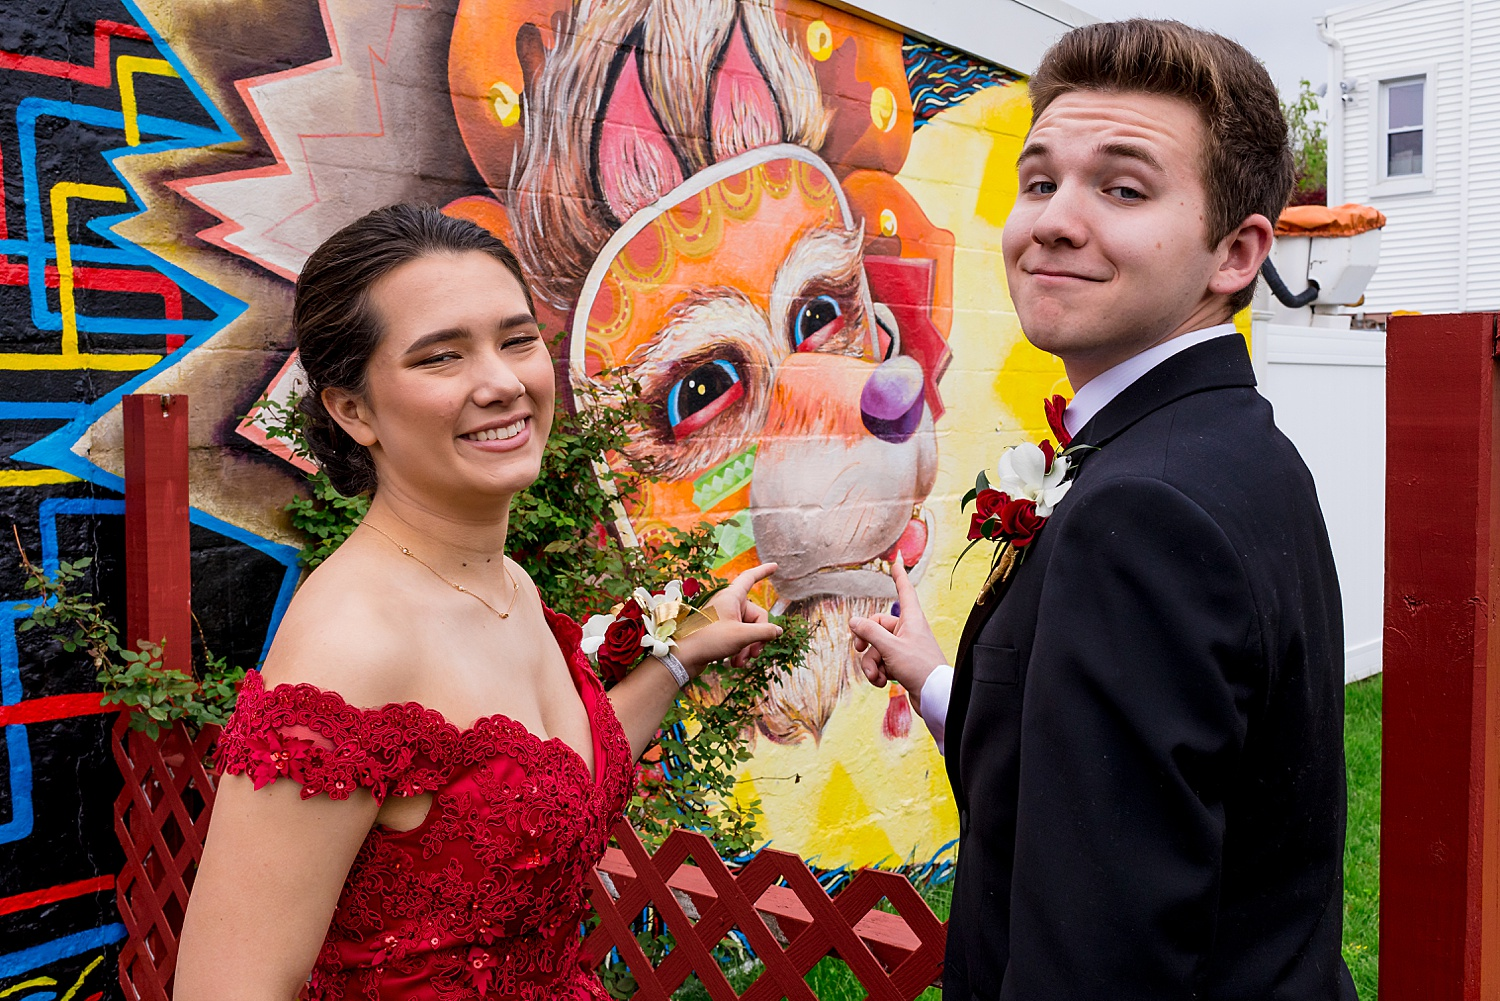 Wyomissing West Reading Pennsylvania high school prom Class of 2019 2020 senior portrait photographer murals